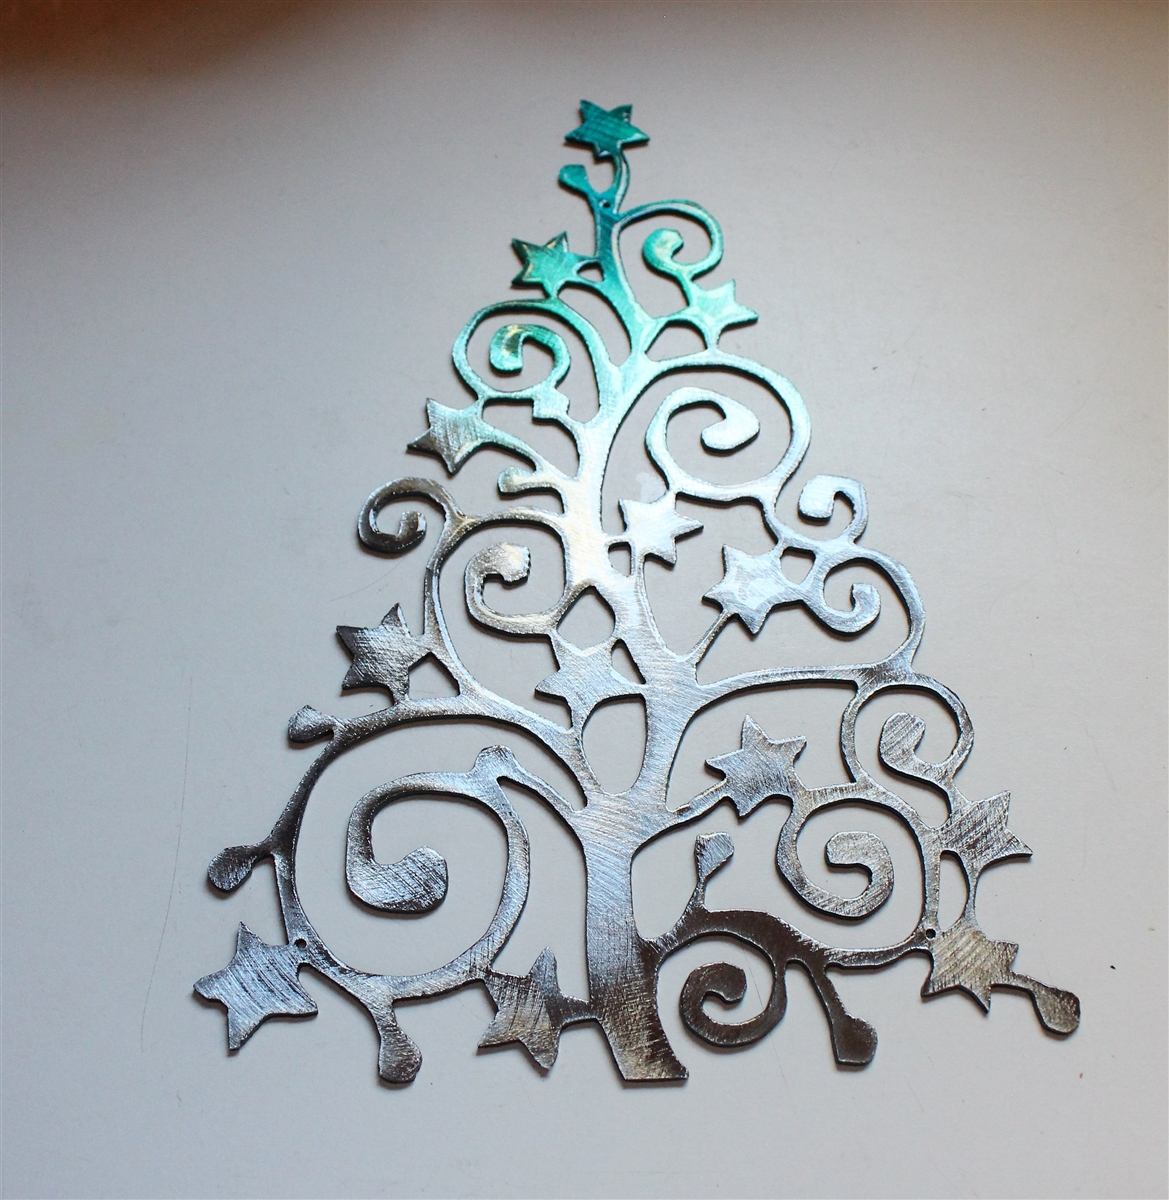 Swirly Ornamental Christmas Tree Metal Wall Art Decor Teal Tainted Silver